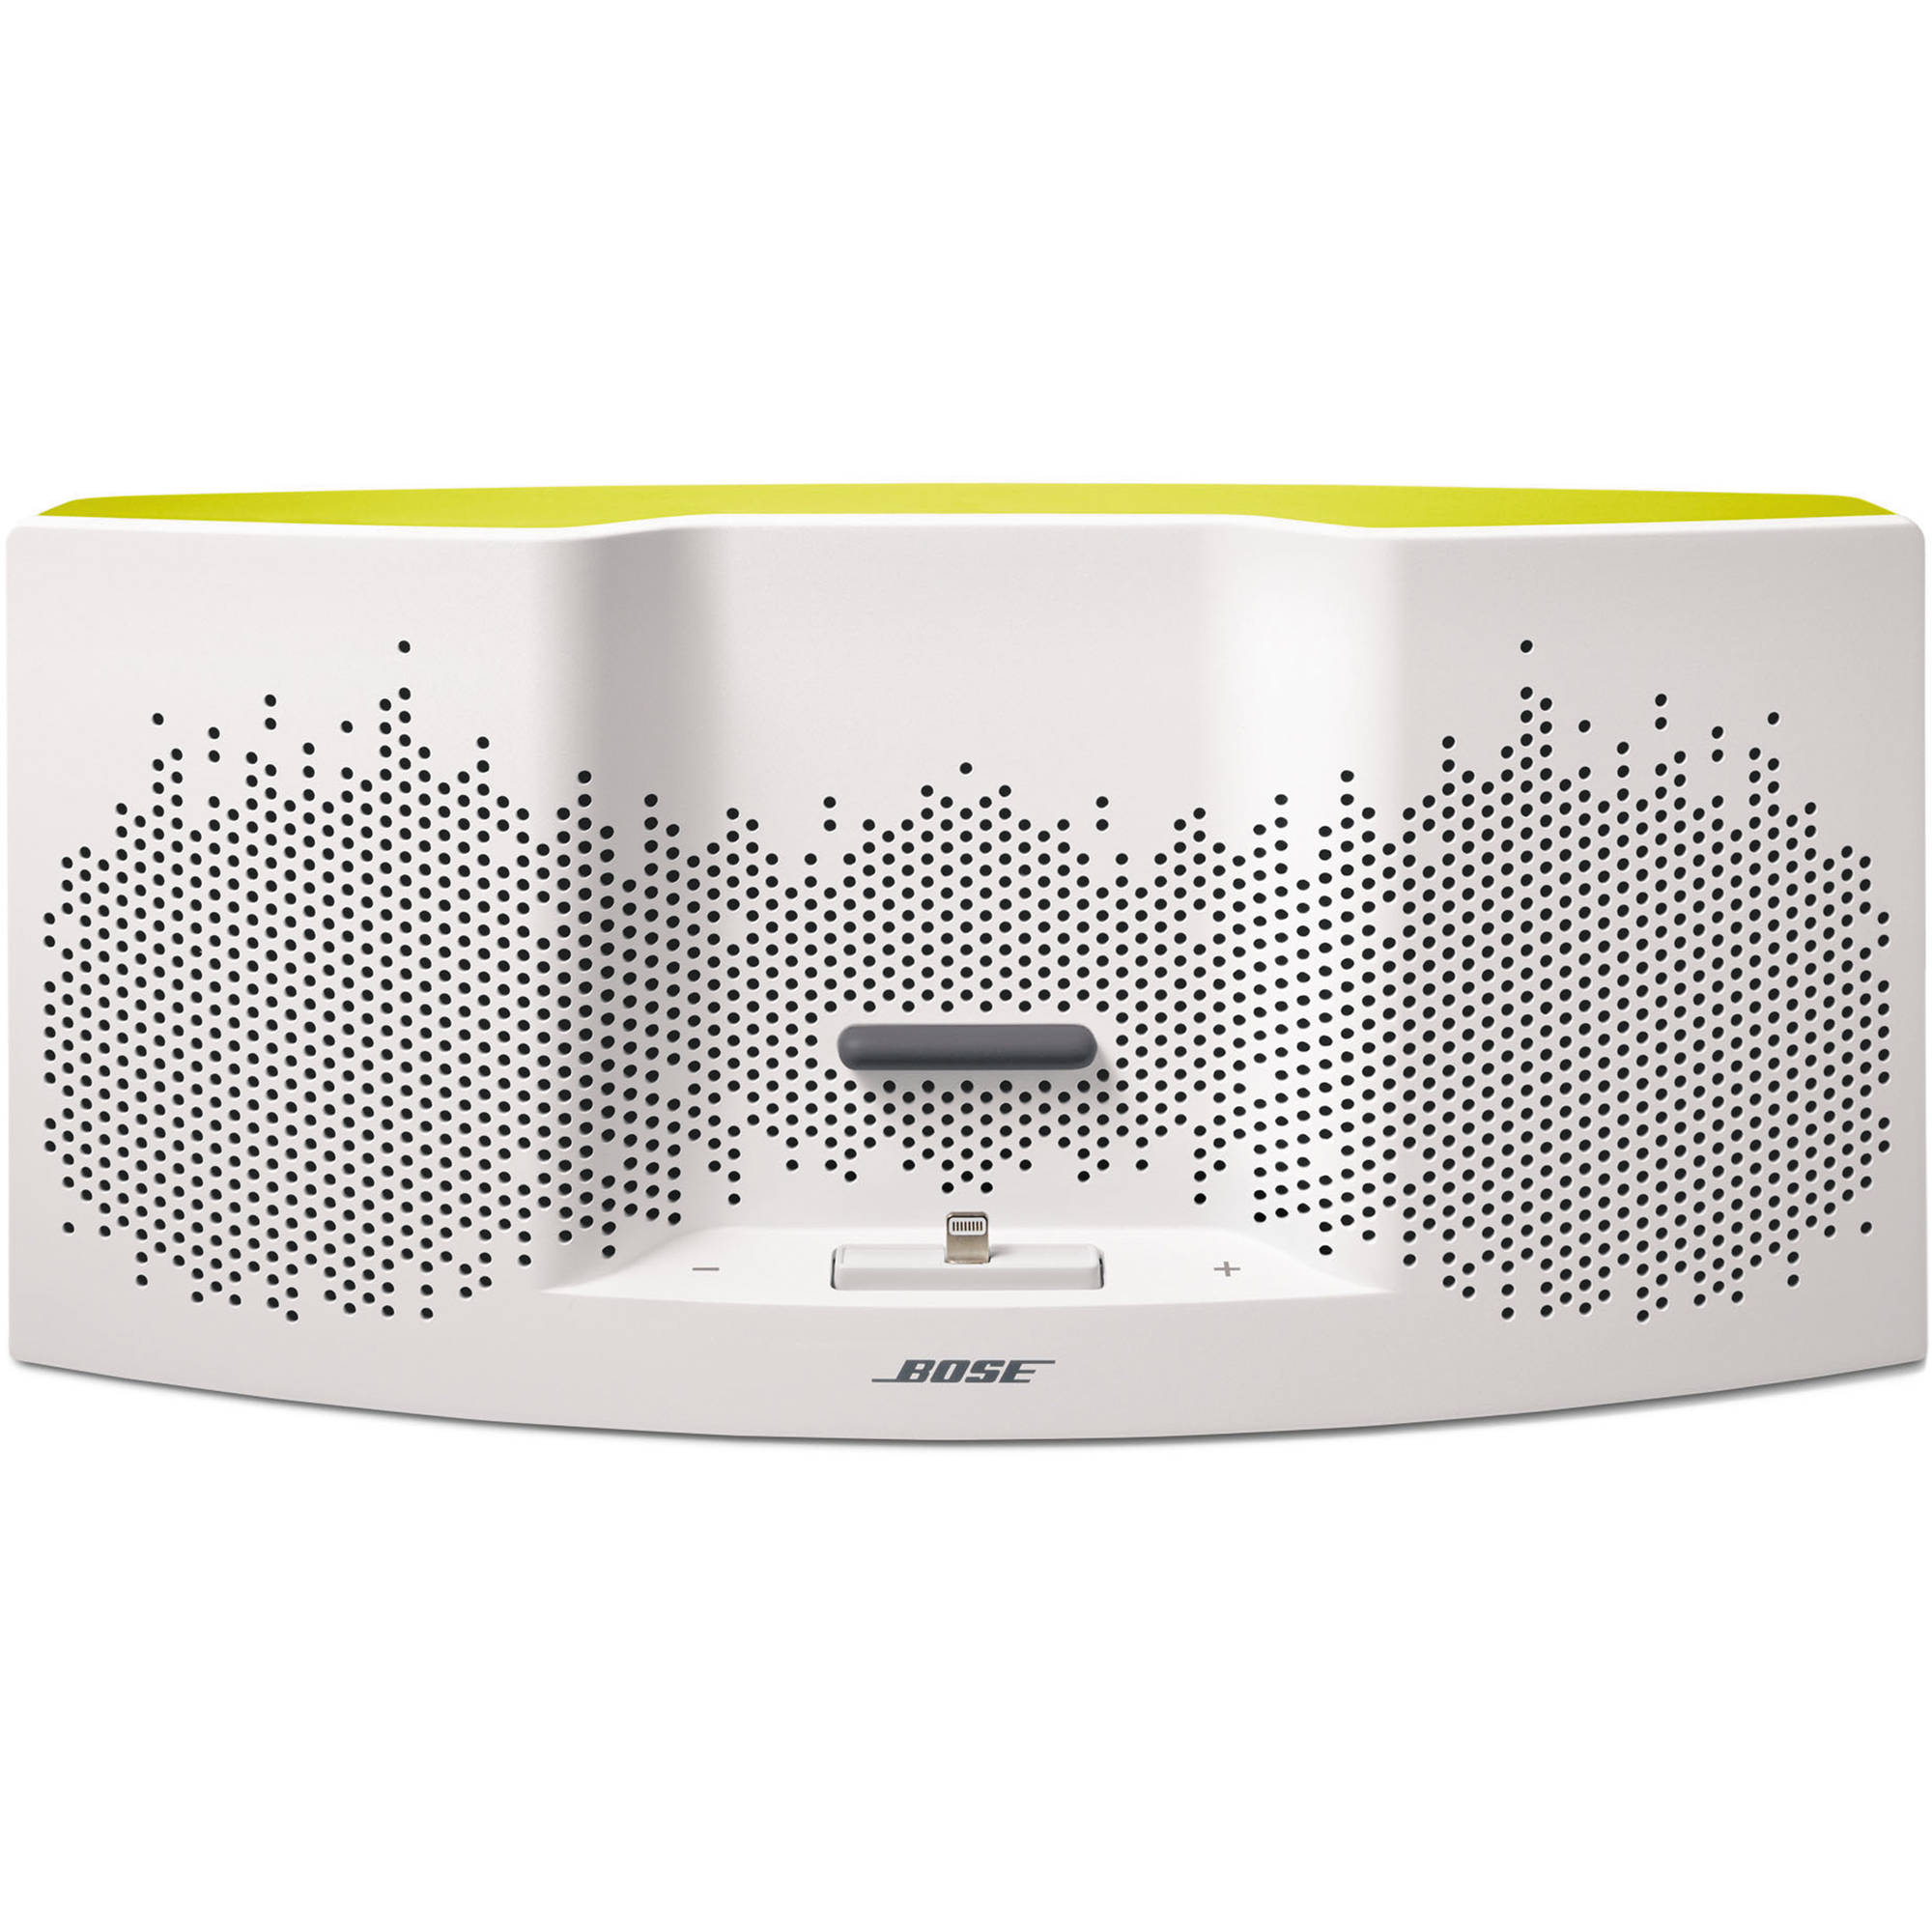 bose sounddock xt speaker white yellow 626209 1900 b h photo. Black Bedroom Furniture Sets. Home Design Ideas